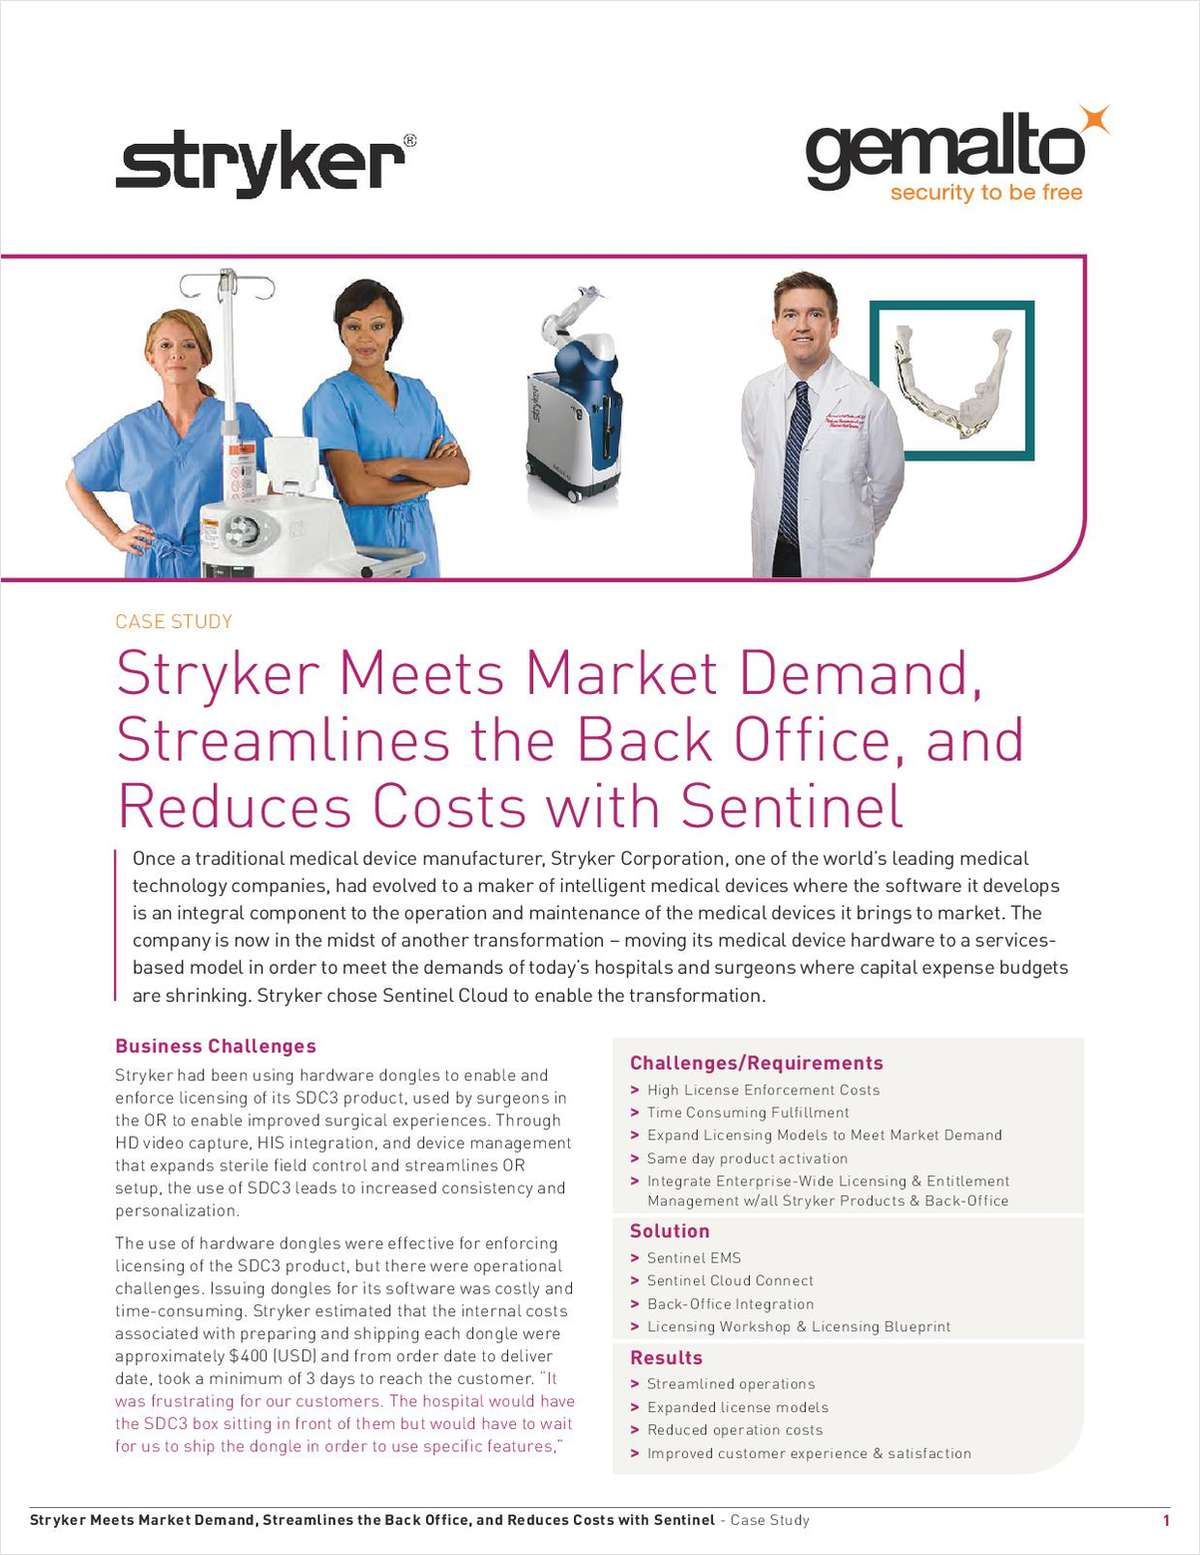 Stryker Meets Market Demand, Streamlines the Back Office, and Reduces Costs with Sentinel